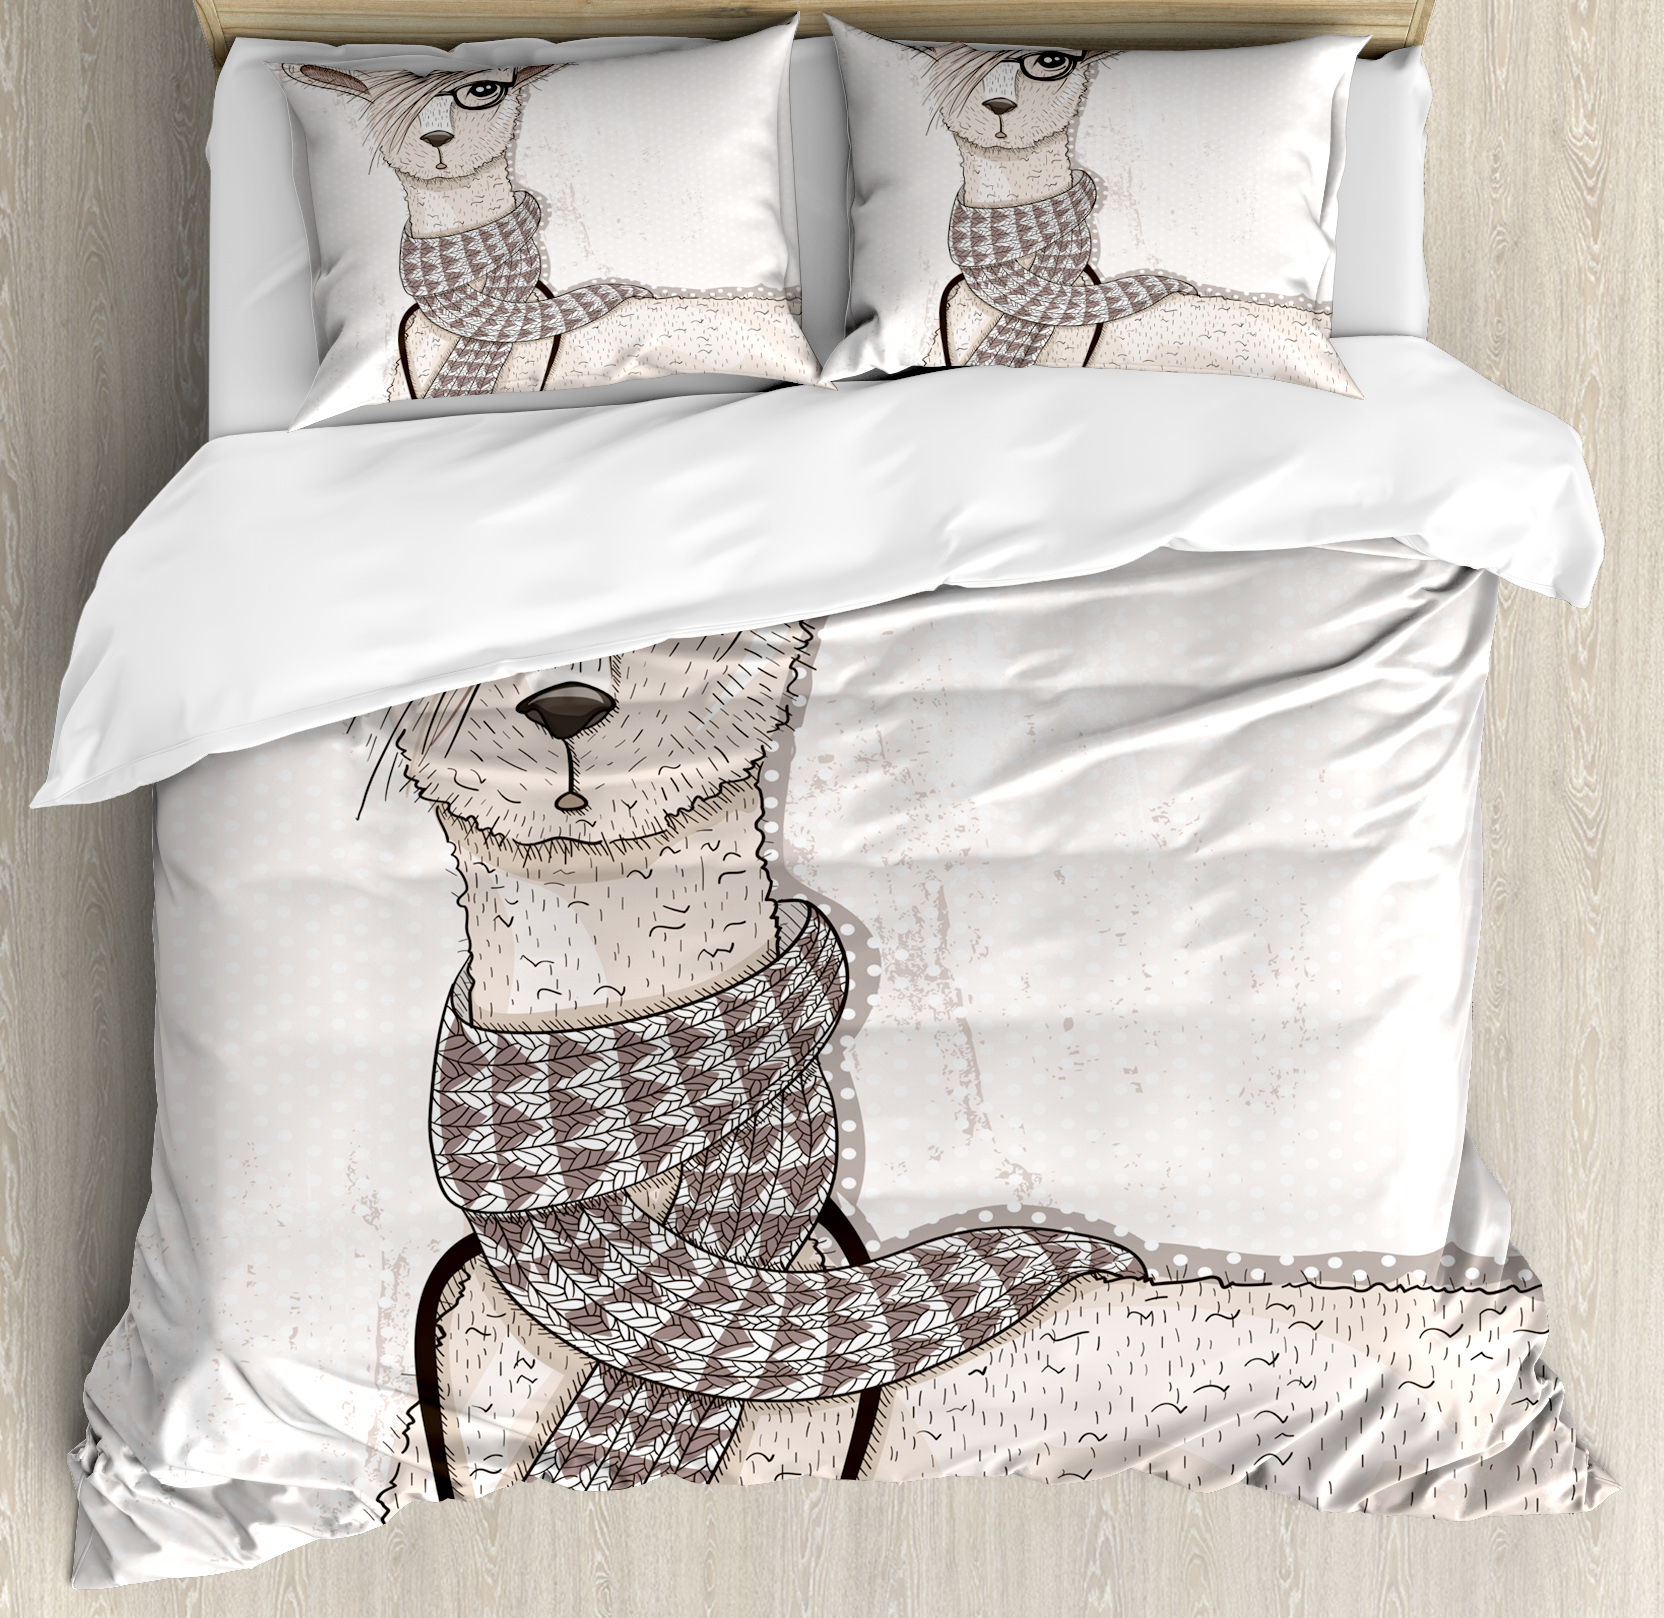 Teen Room Duvet Cover Set, Hipster Lama Figure with Hair Style and Camera Artist Animal Humorous Graphic, Decorative Bedding Set with Pillow Shams, Beige Tan, by Ambesonne